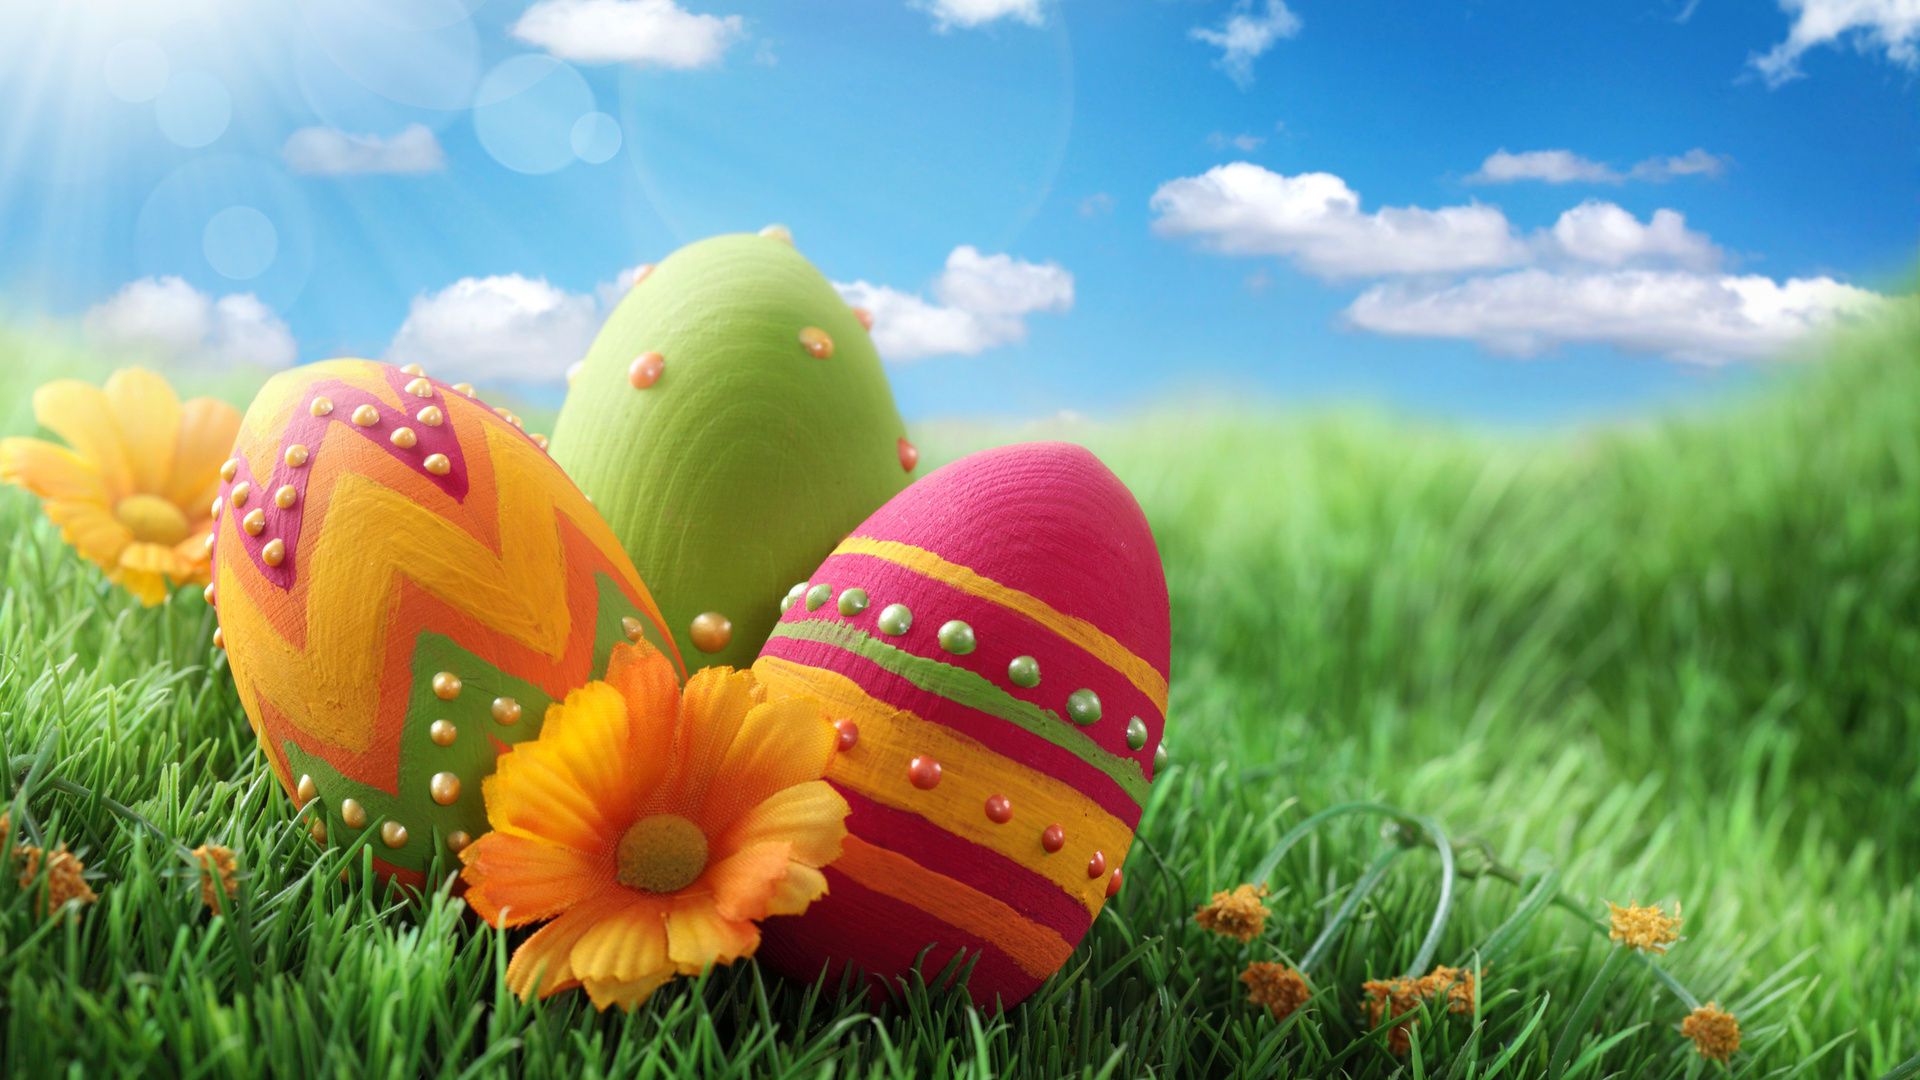 Easter wallpaper 1920x1080 52957 1920x1080